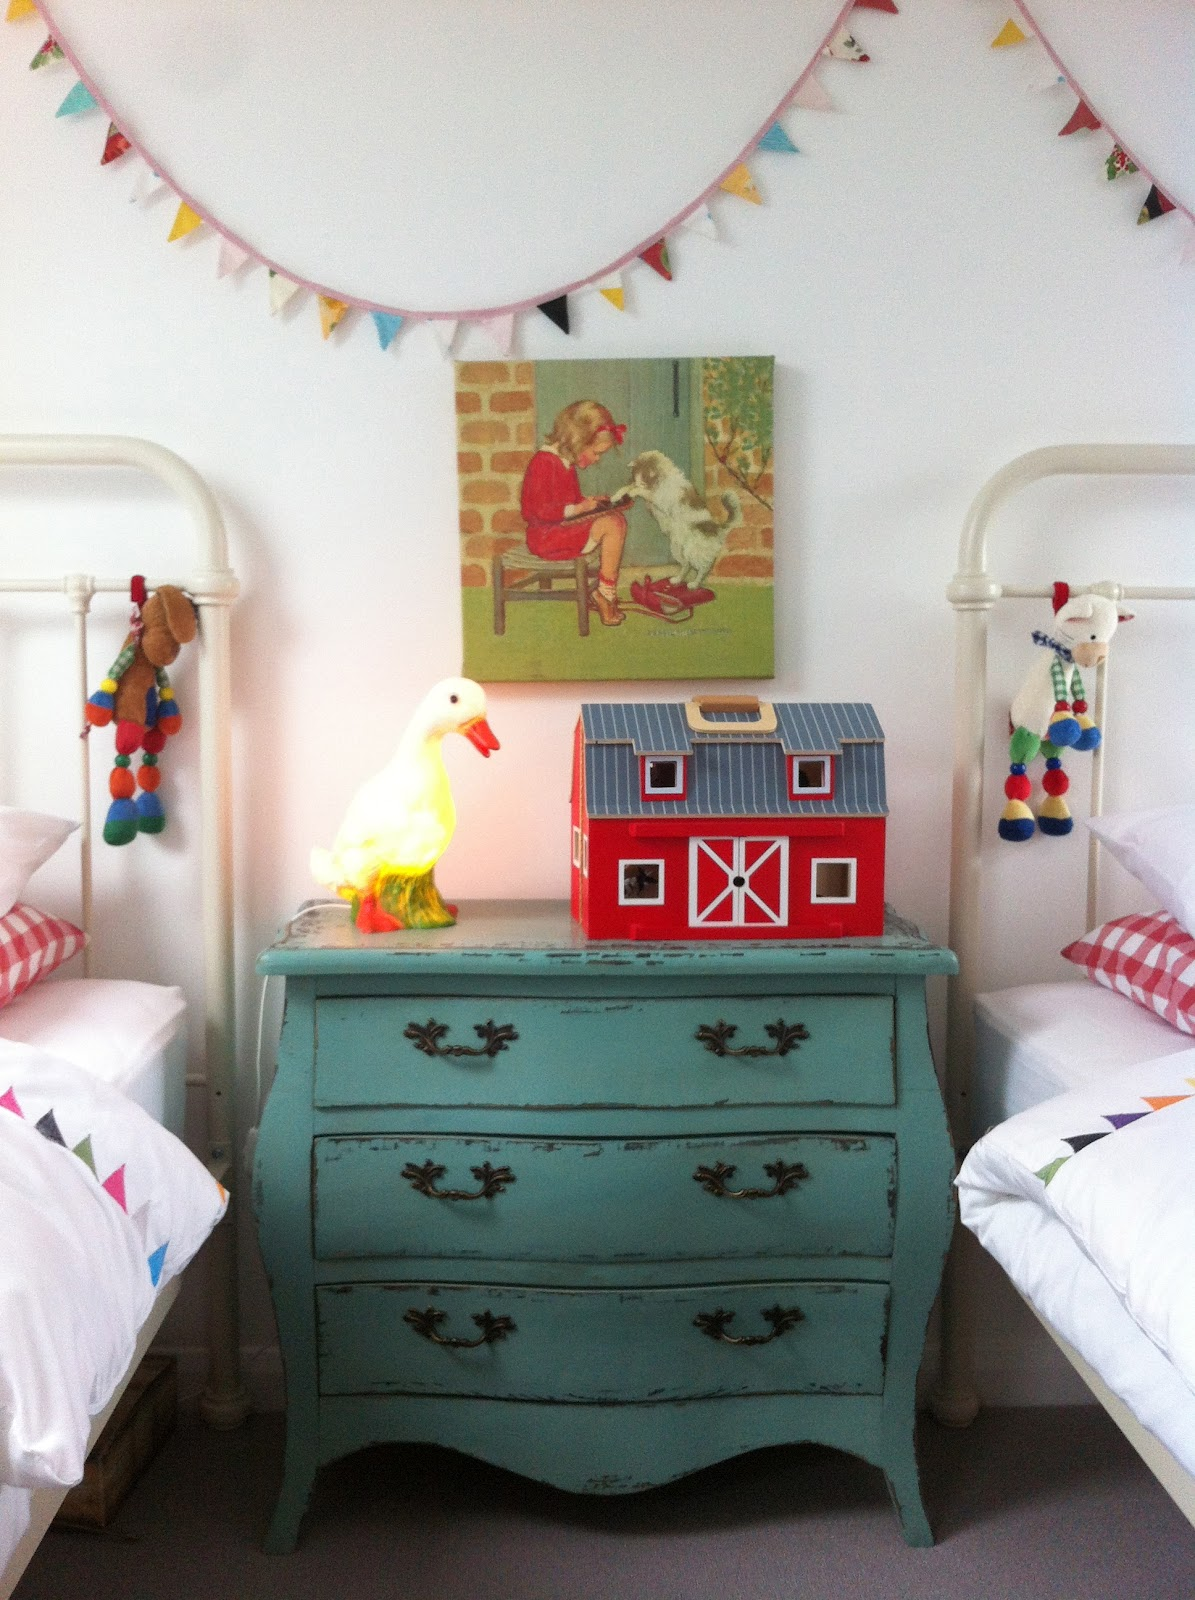 Can My Baby And Toddler Share A Bedroom Babycentre Uk: The Boo And The Boy: Vintage Inspired Shared Girls' Room